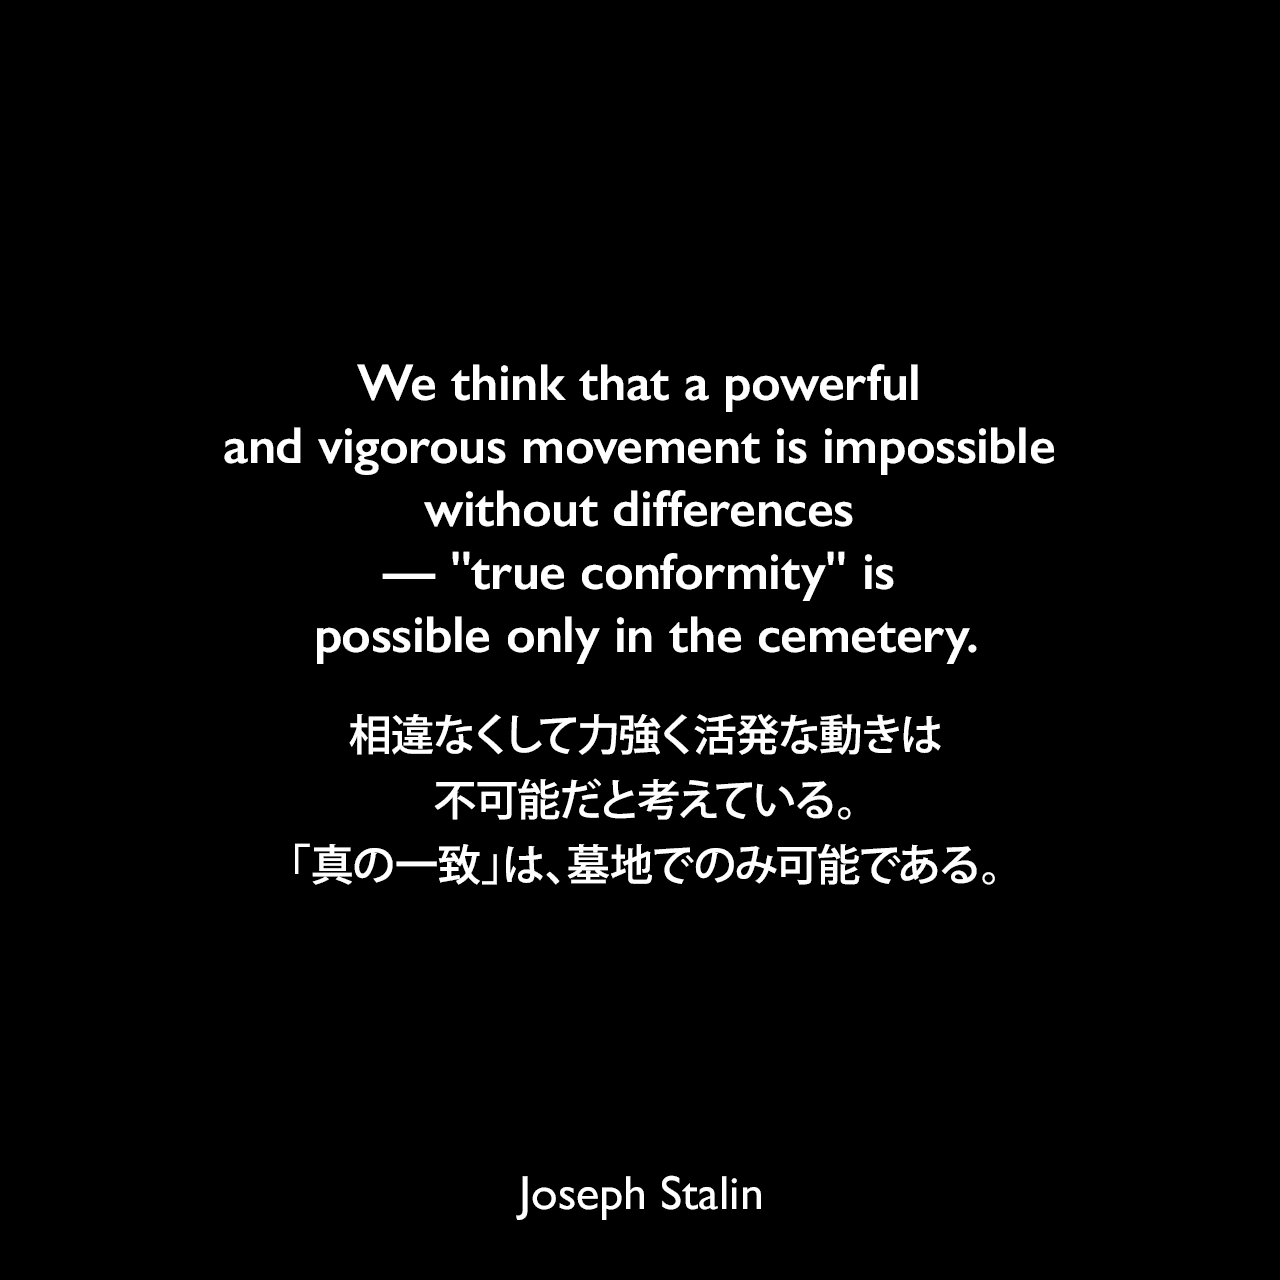 We think that a powerful and vigorous movement is impossible without differences —